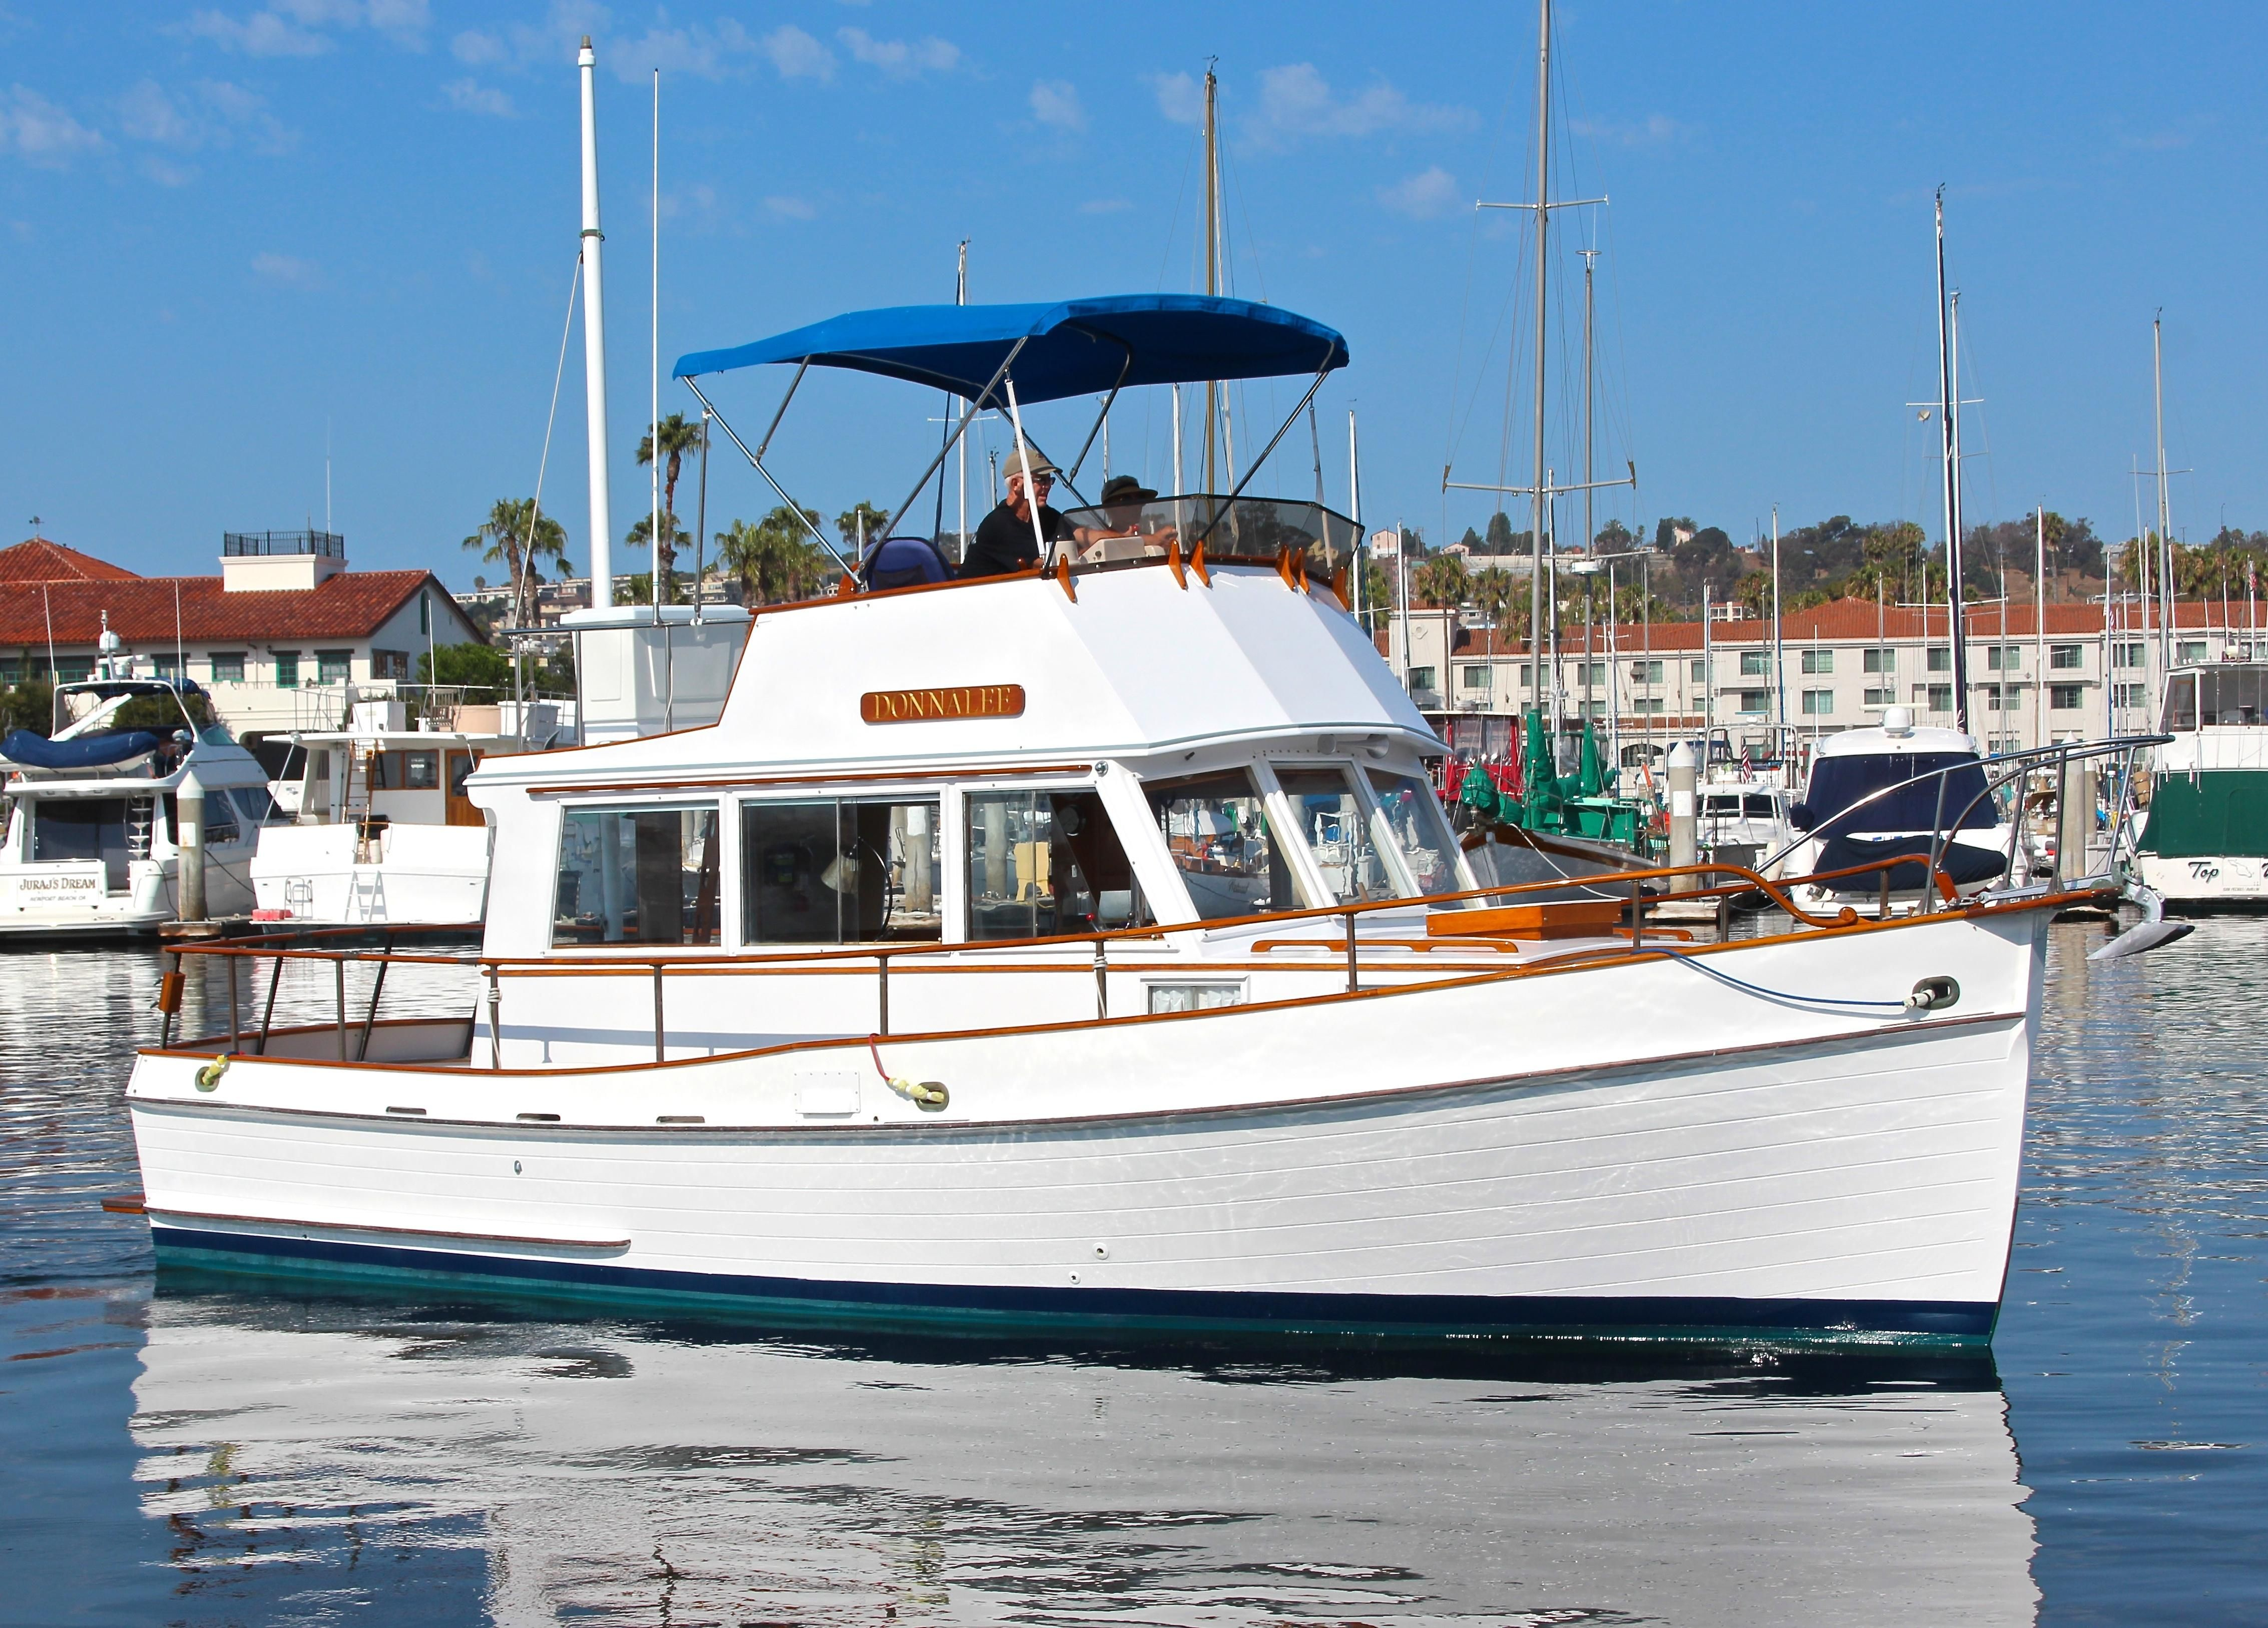 Singles in grand bank Which is the best Trawlers - after Grand Bank of course. - Cruisers & Sailing Forums